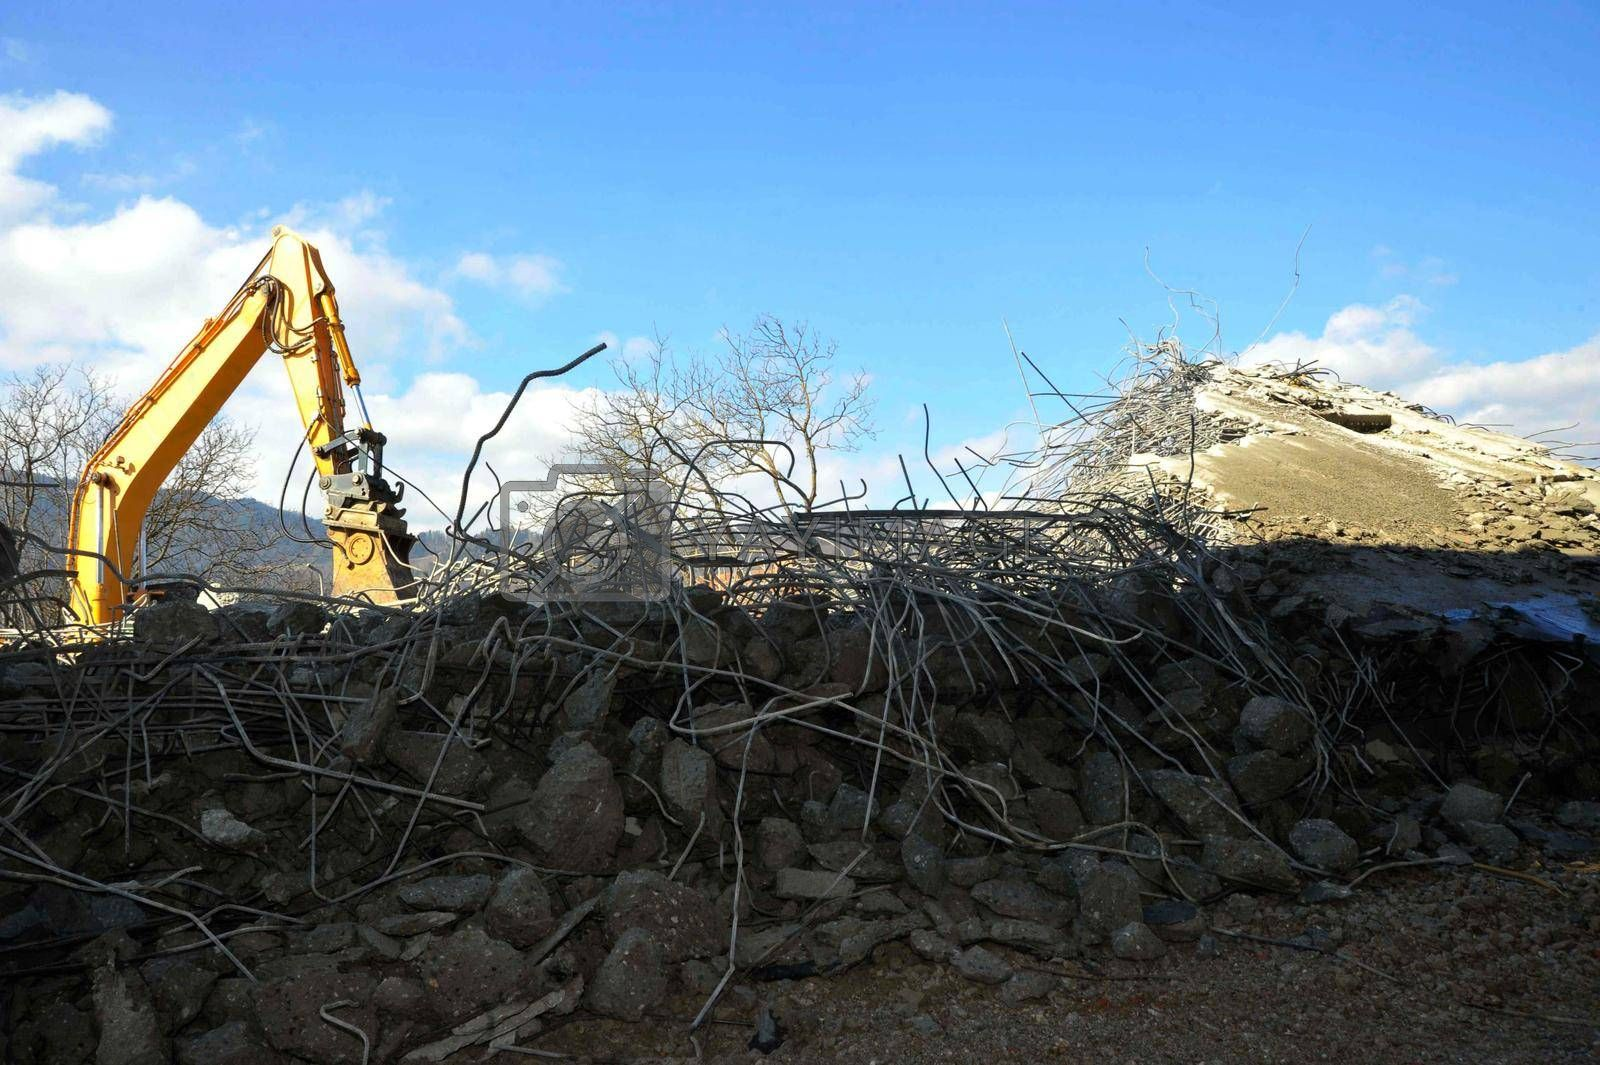 a road demolition or a street demolition in construction industry